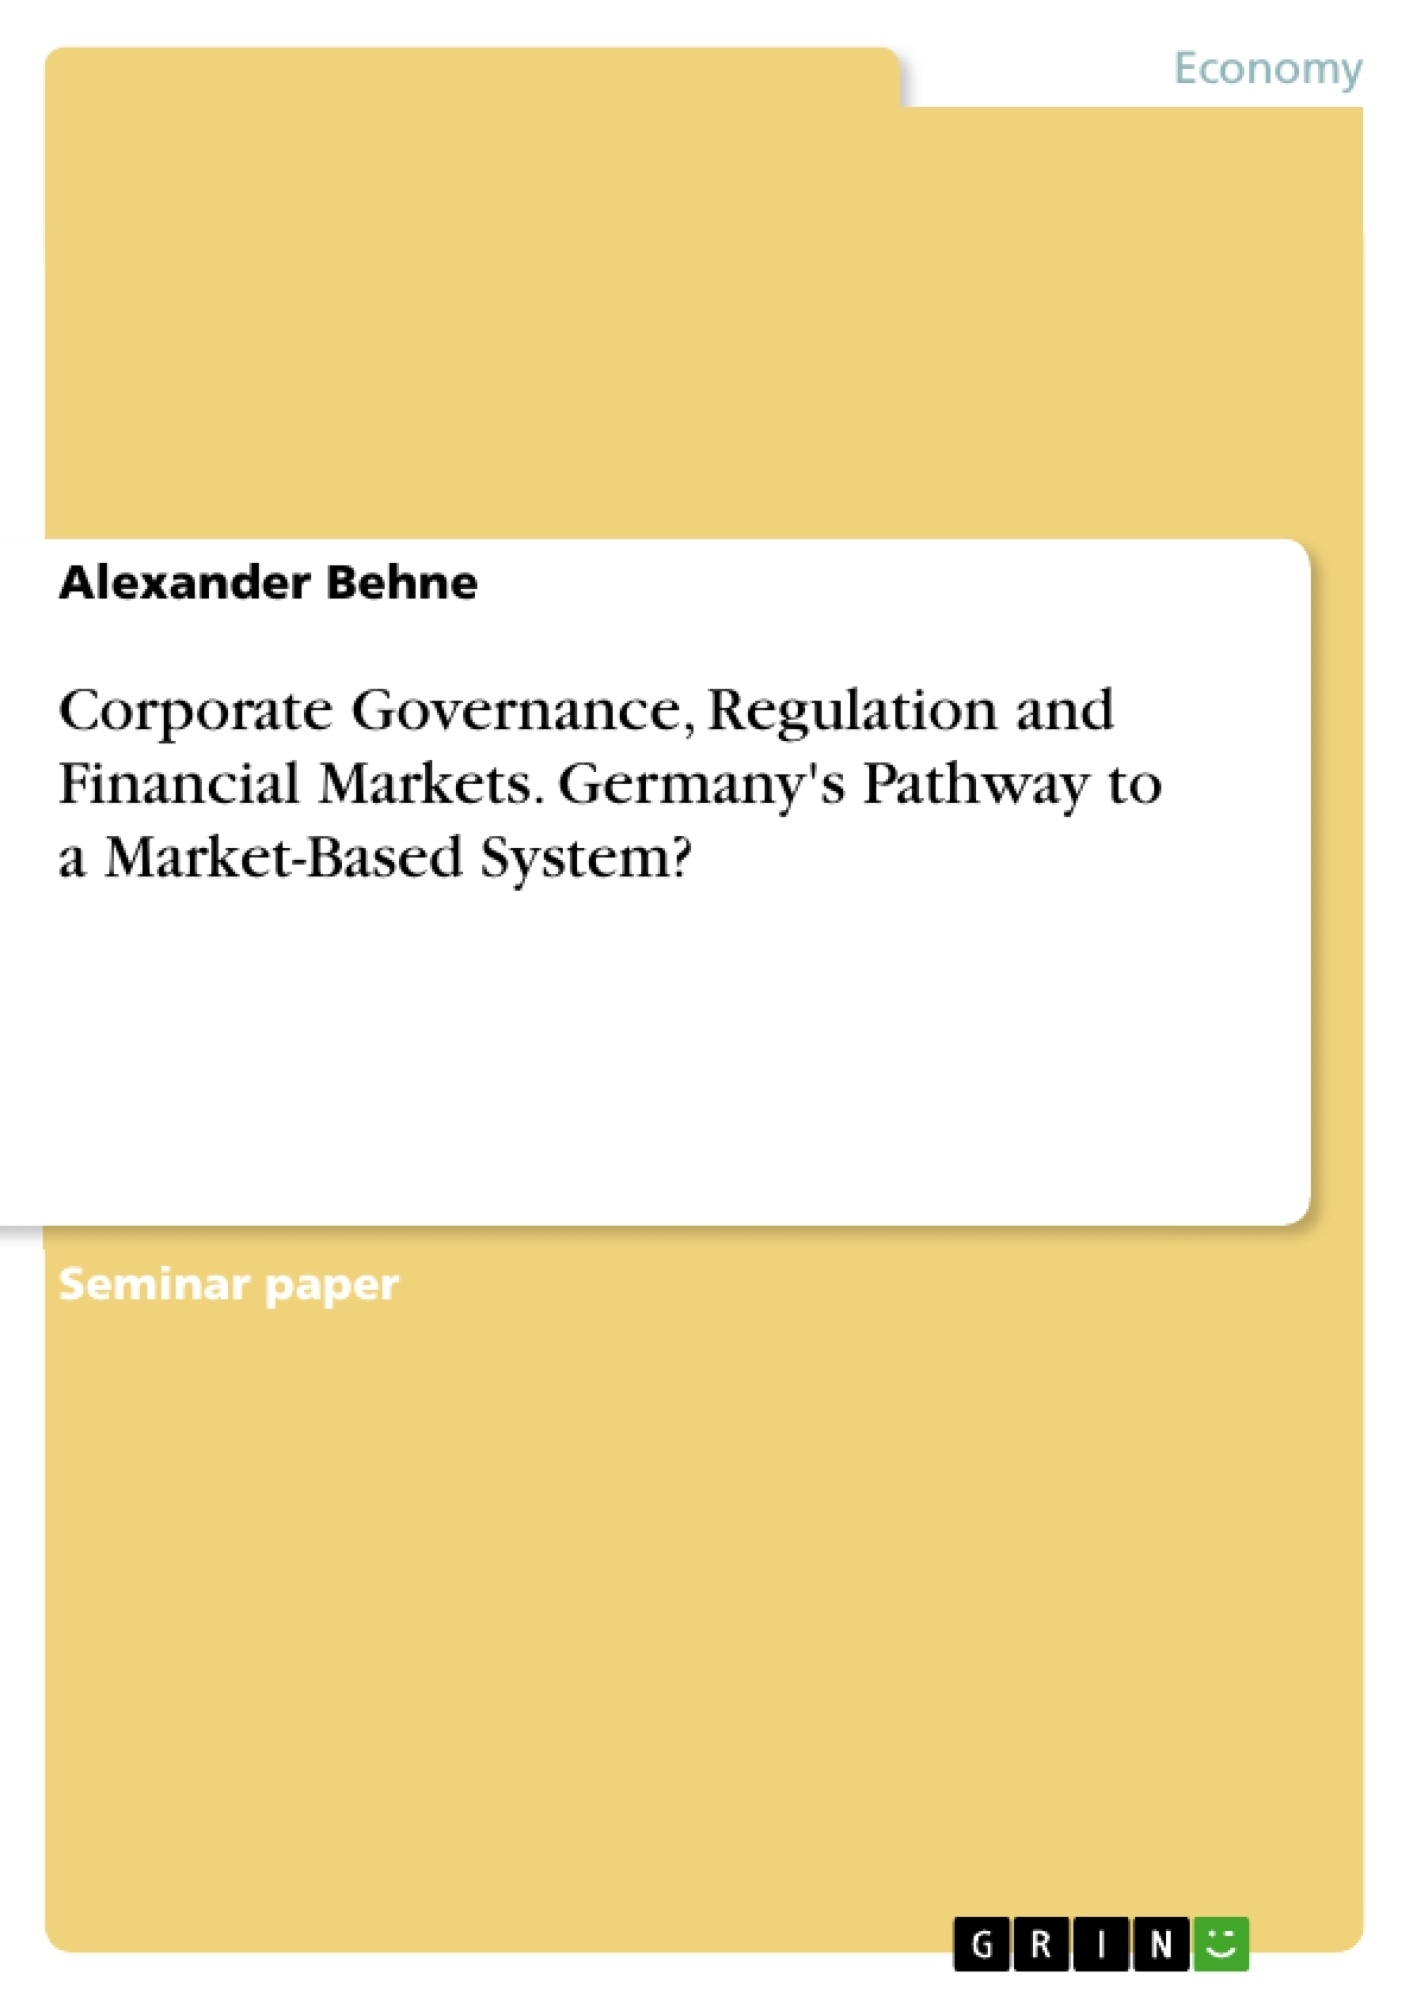 Title: Corporate Governance, Regulation and Financial Markets. Germany's Pathway to a Market-Based System?